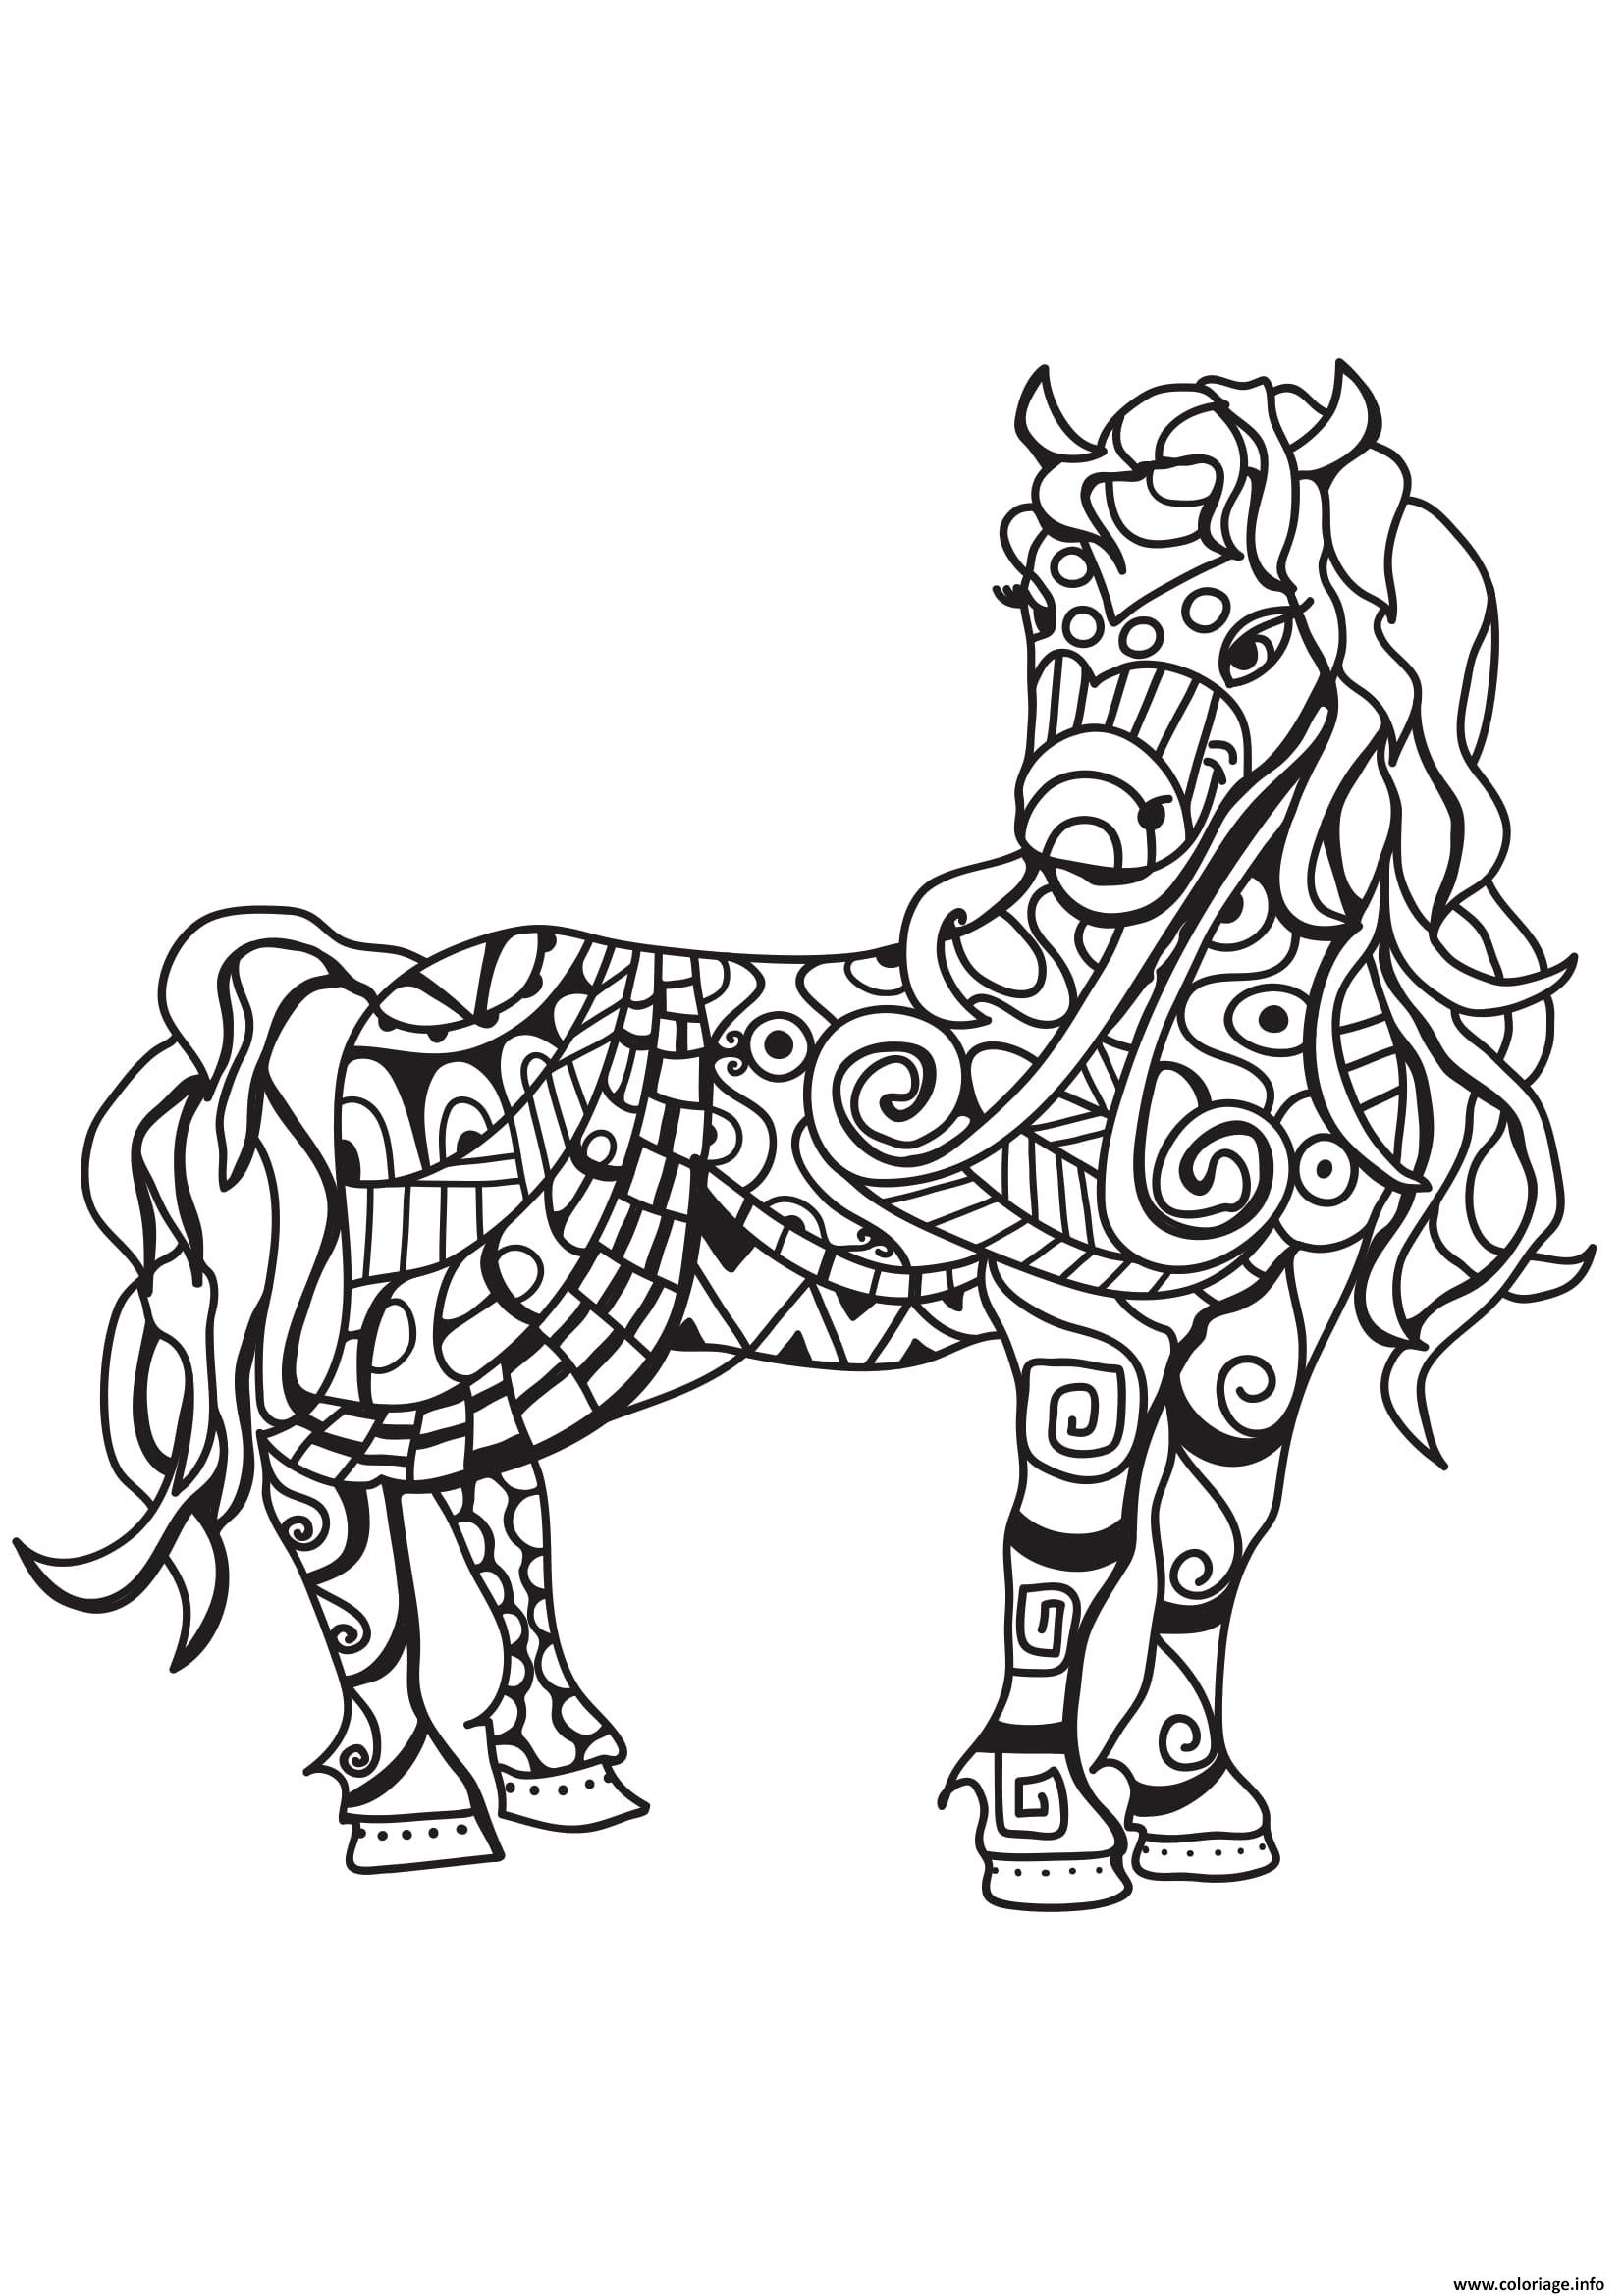 Coloriage Cheval Zen.Coloriage Adulte Cheval Zentangle 10 Jecolorie Com